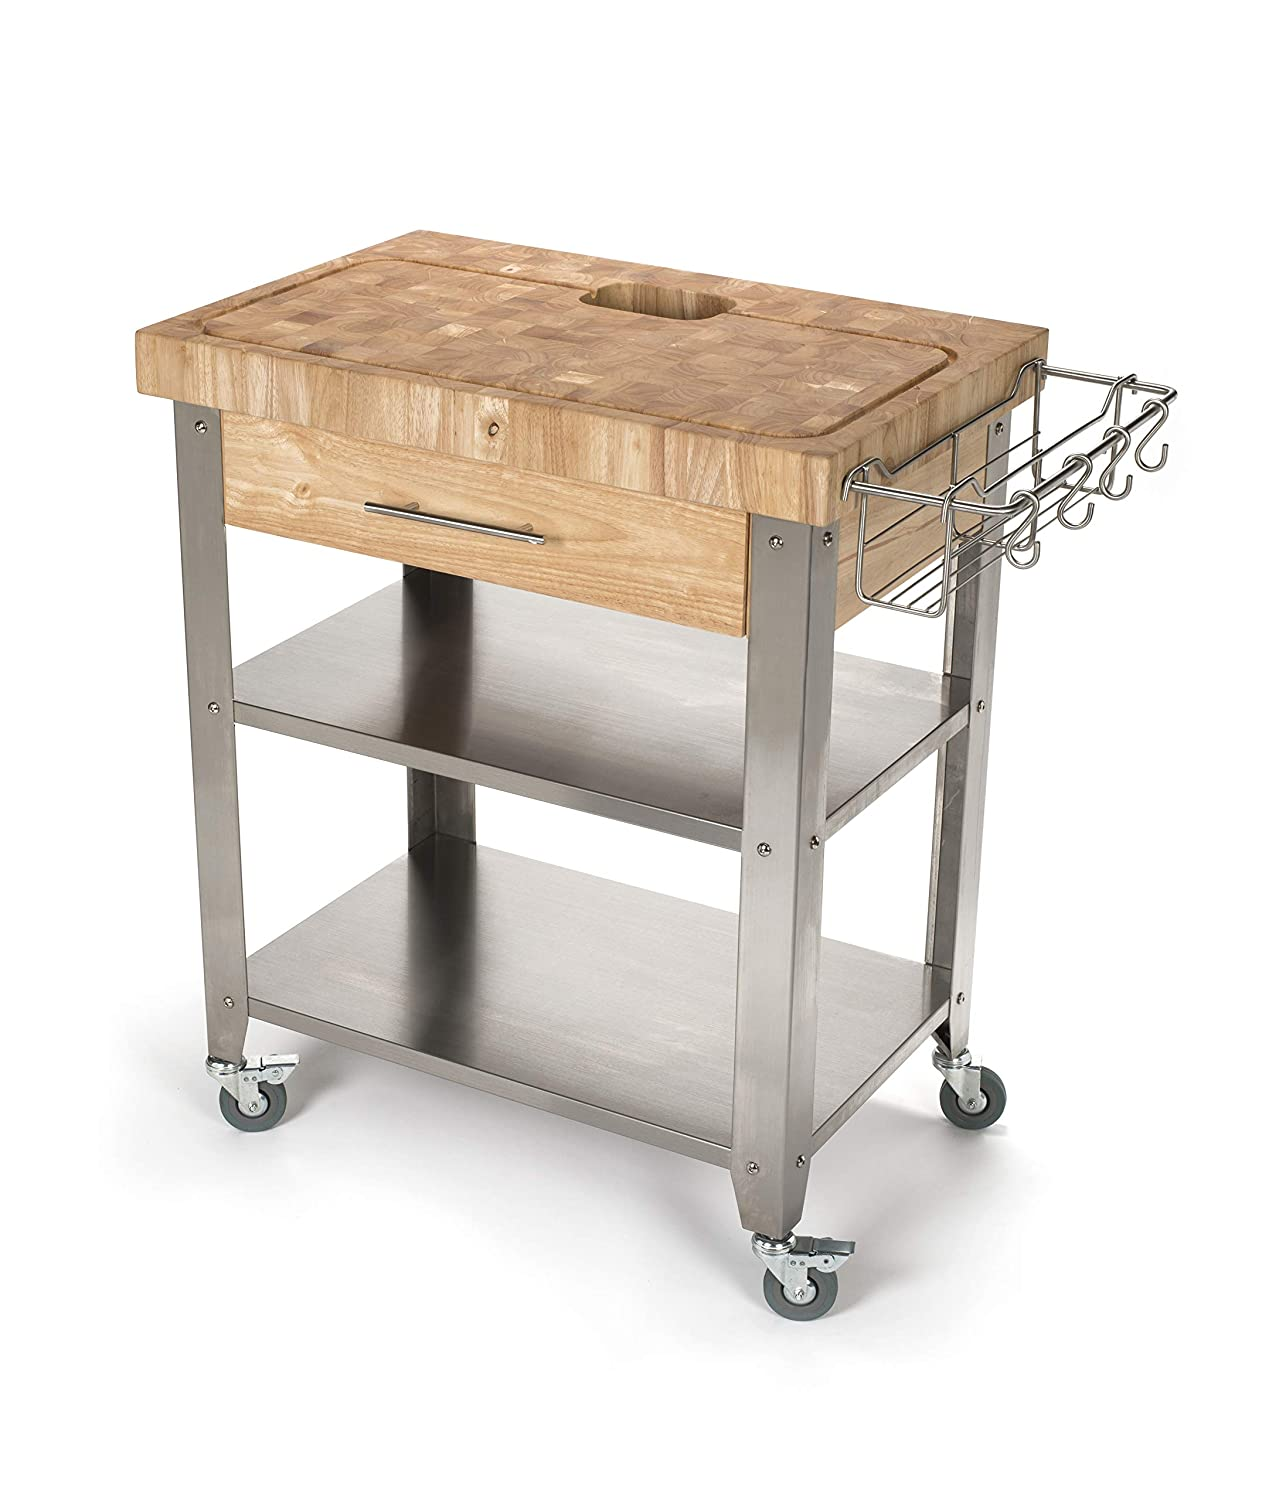 Chris Chris JET018 Rolling Kitchen Island-Portable Food Prep Table with Durable Cutting Surface, Juice Groove Collection Pan-Includes Storage Drawer, Spice Rack, 2 Stainless Steel Shelves, Natural